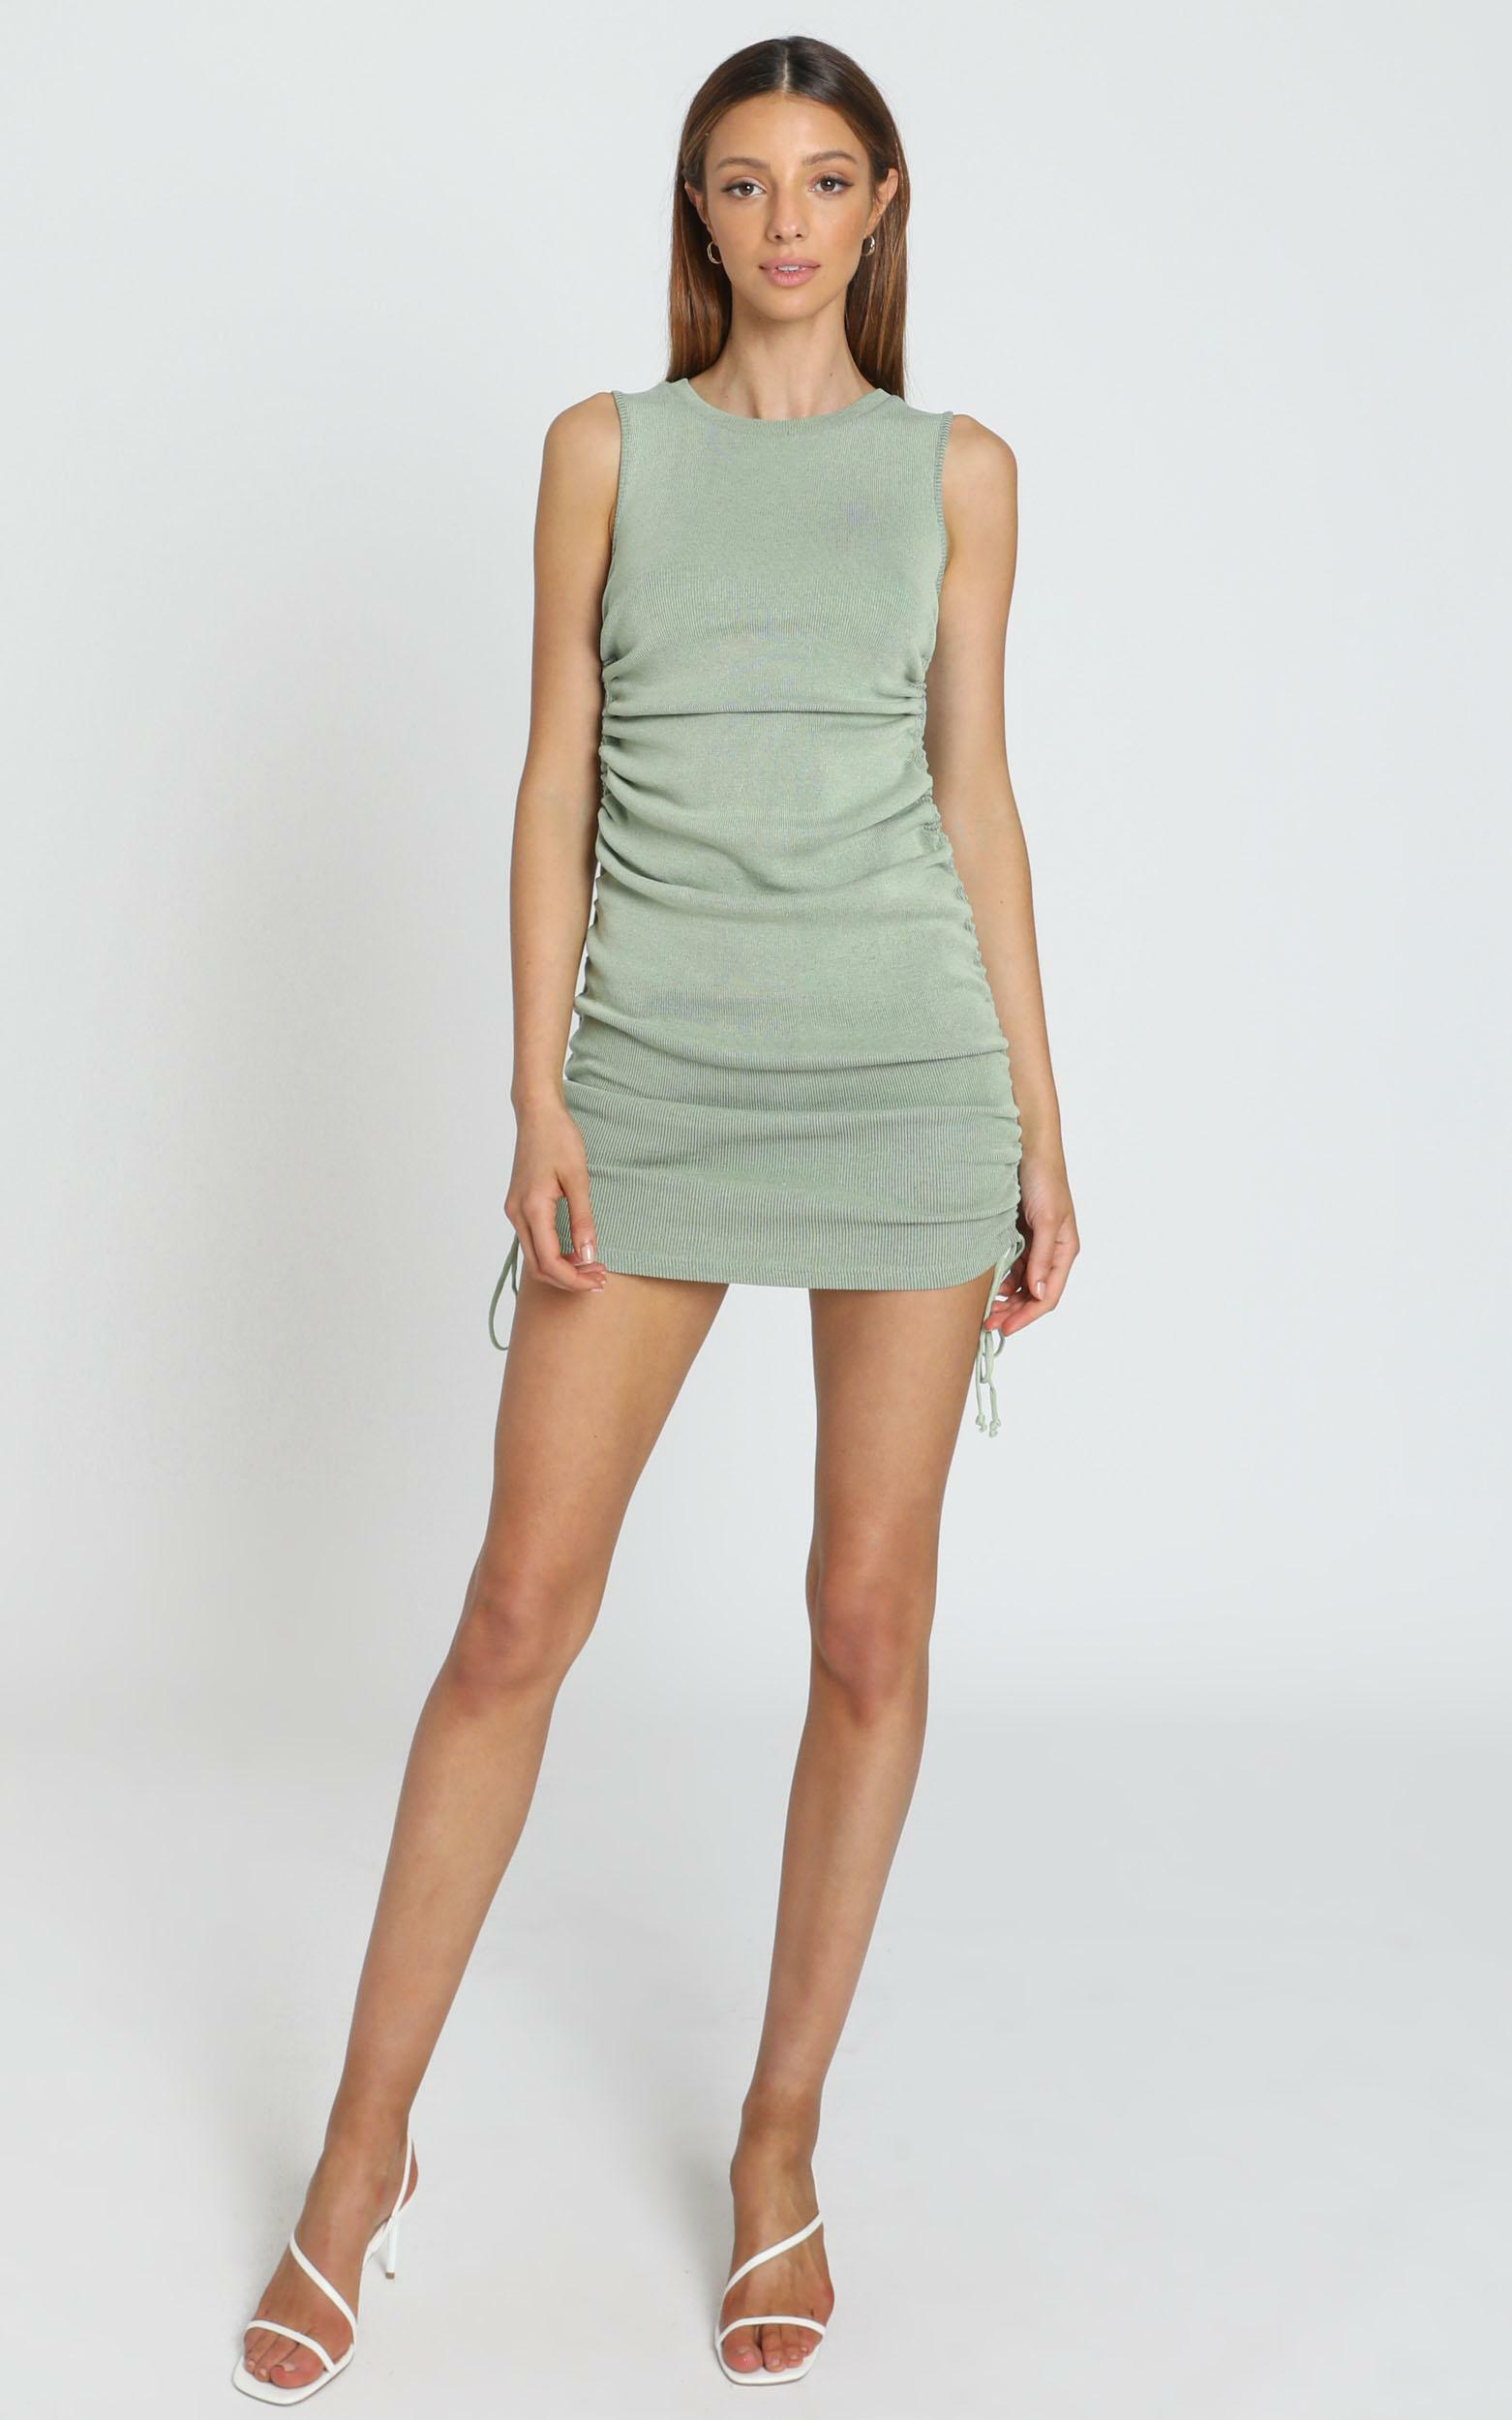 Lioness - Military Minds dress in pistachio - 6 (XS), GRN2, hi-res image number null